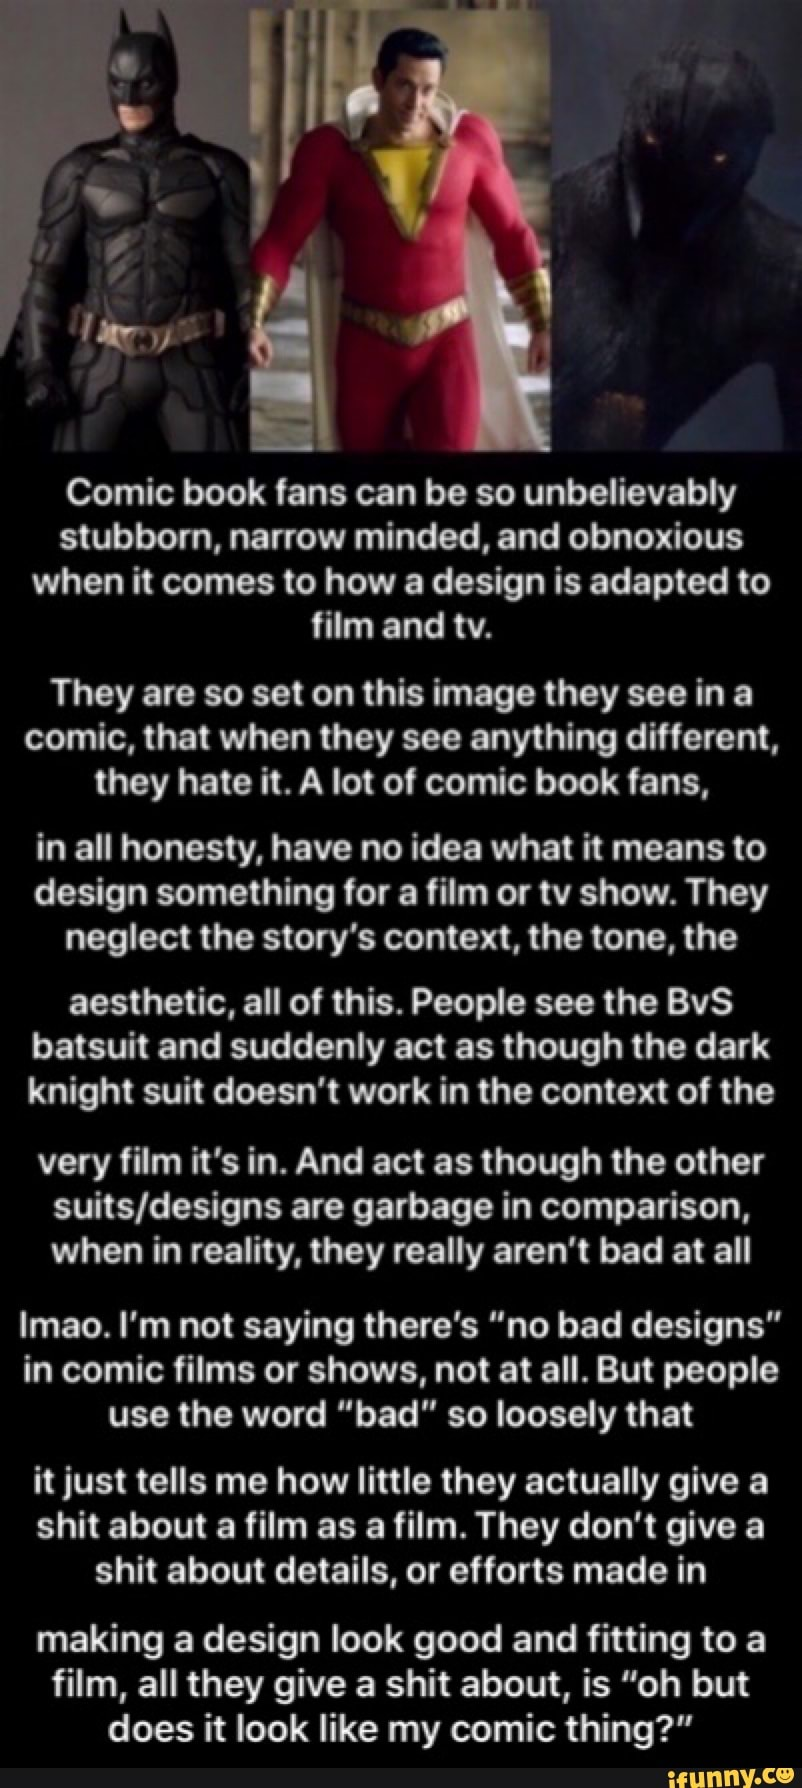 Comic book fans can be so unbelievably stubborn, narrow minded, and  obnoxious when it comes to how a design is adapted to film and tv. They are  so set on this image